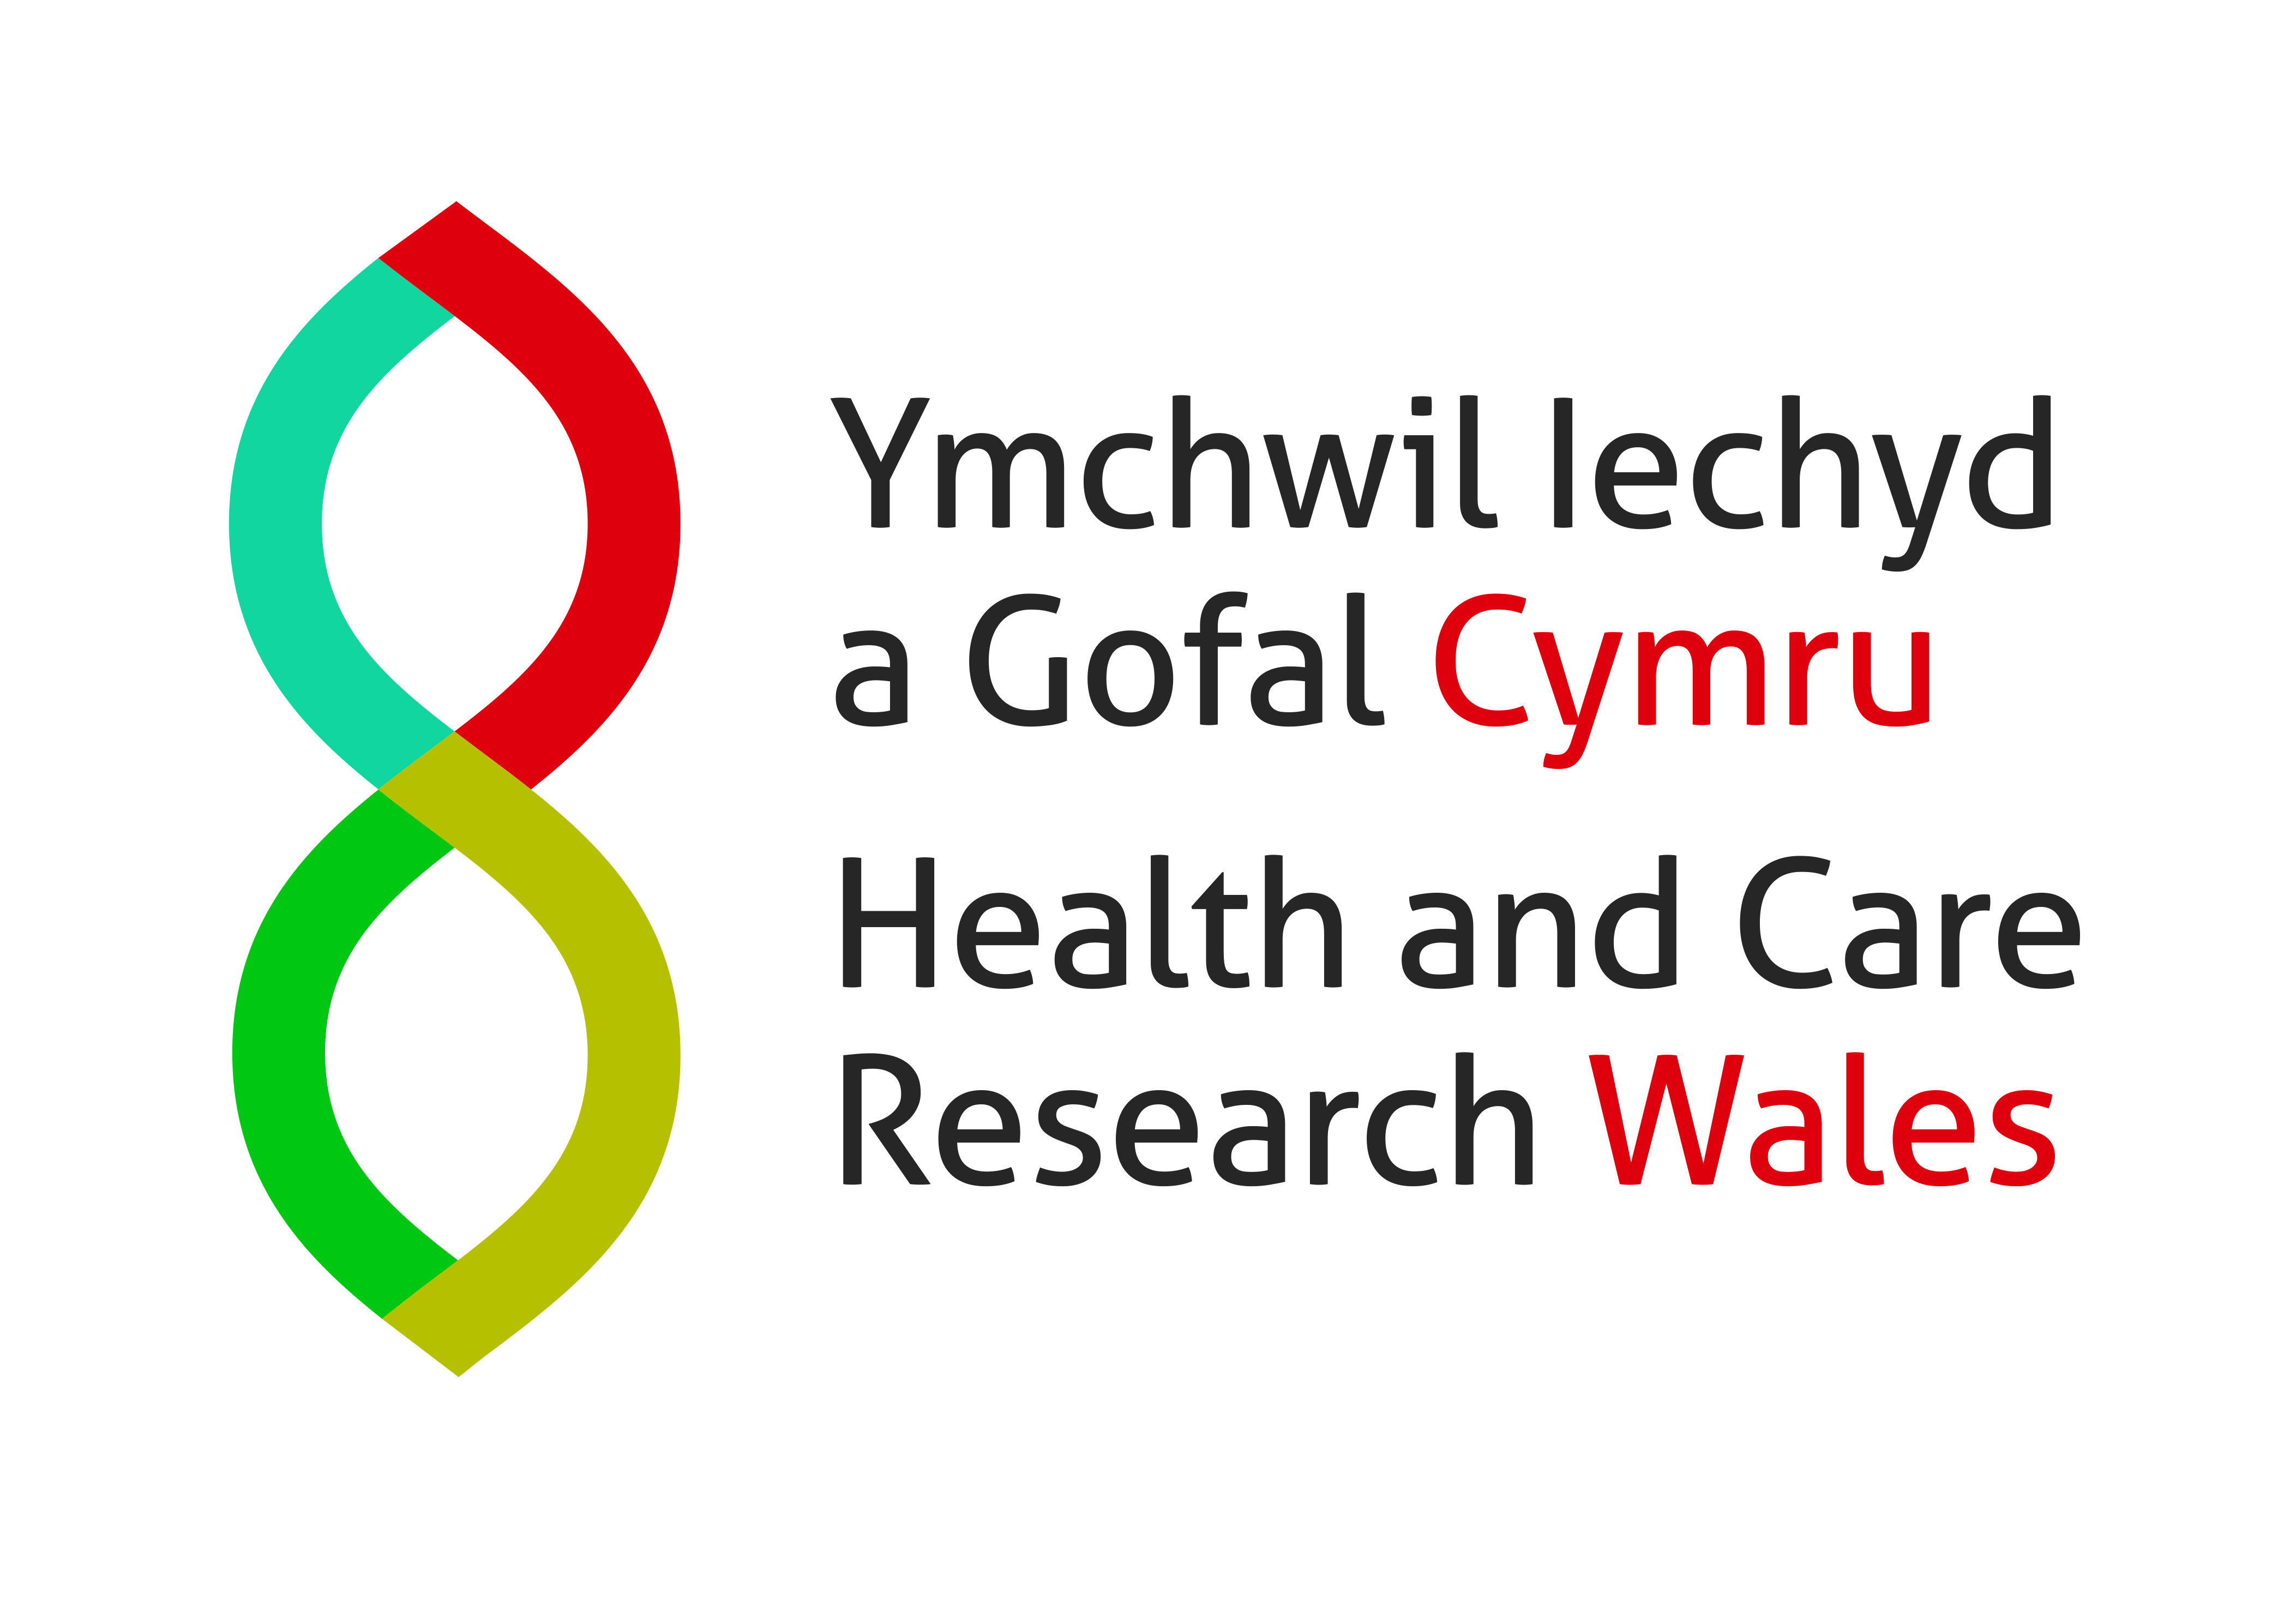 Health and Care Research Wales full colour logo CMYK.JPG